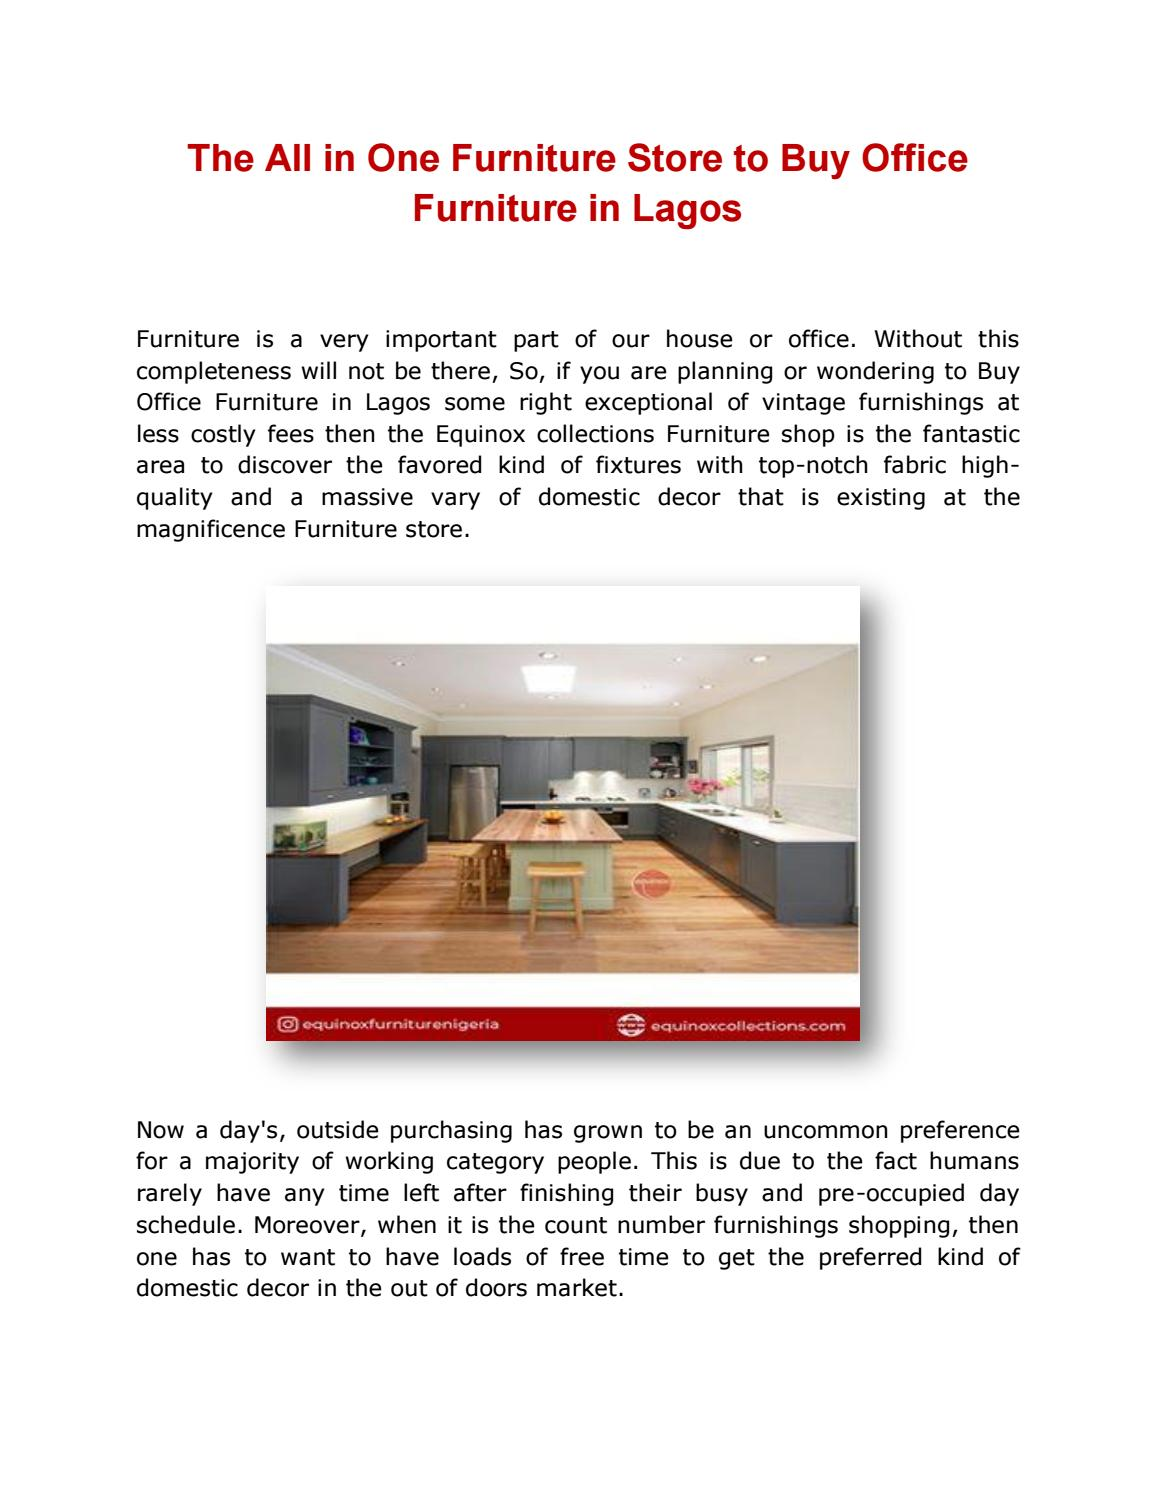 The All In One Furniture Store To Buy Office Furniture In Lagos By Equinoxcollectionsonline Issuu